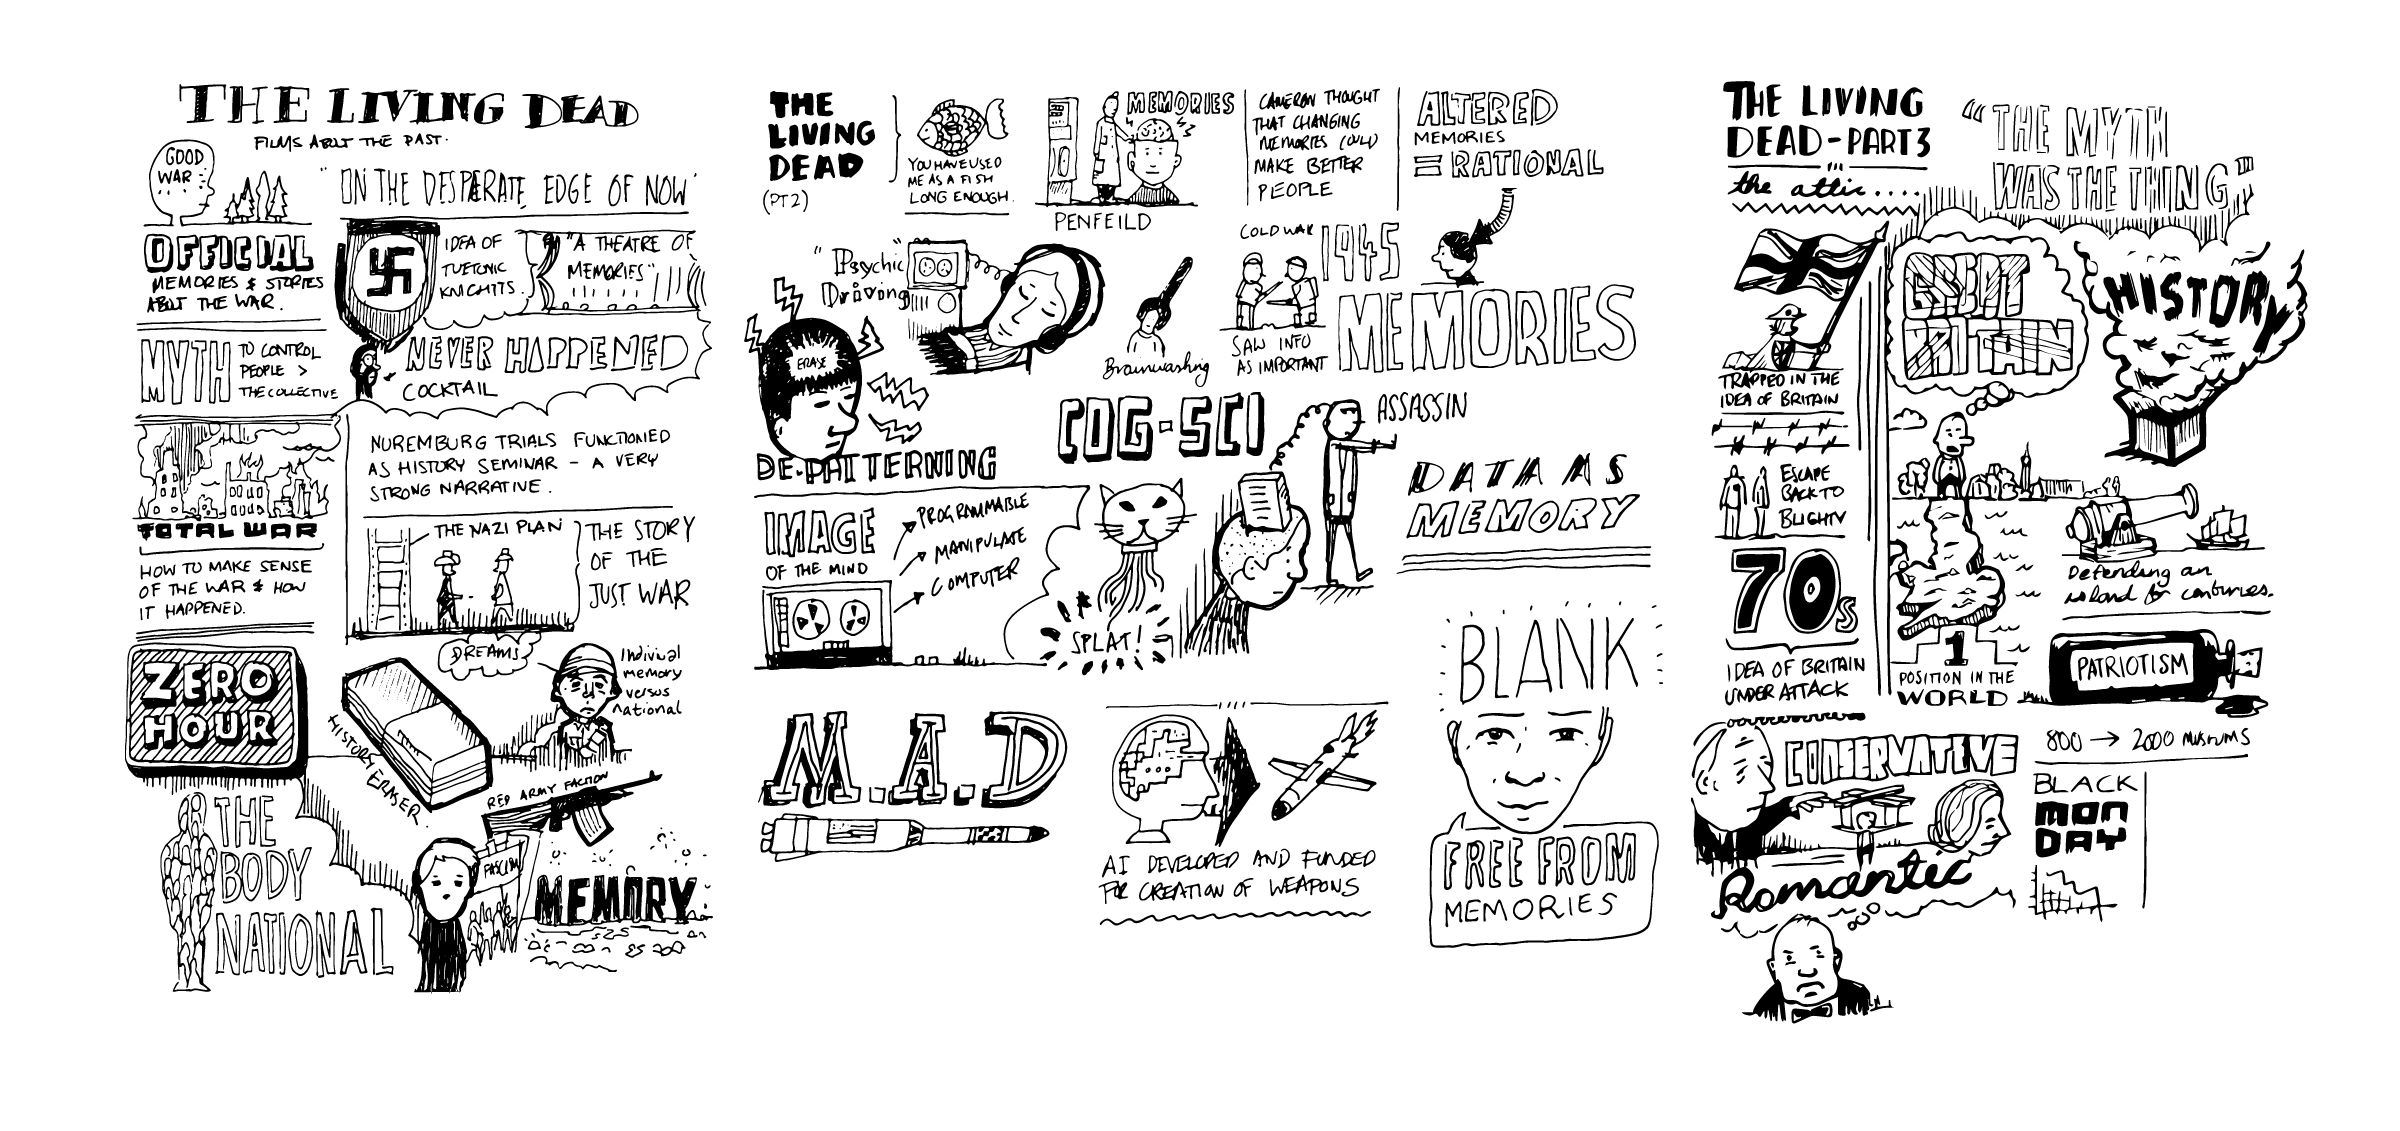 The Living Dead Sketchnotes